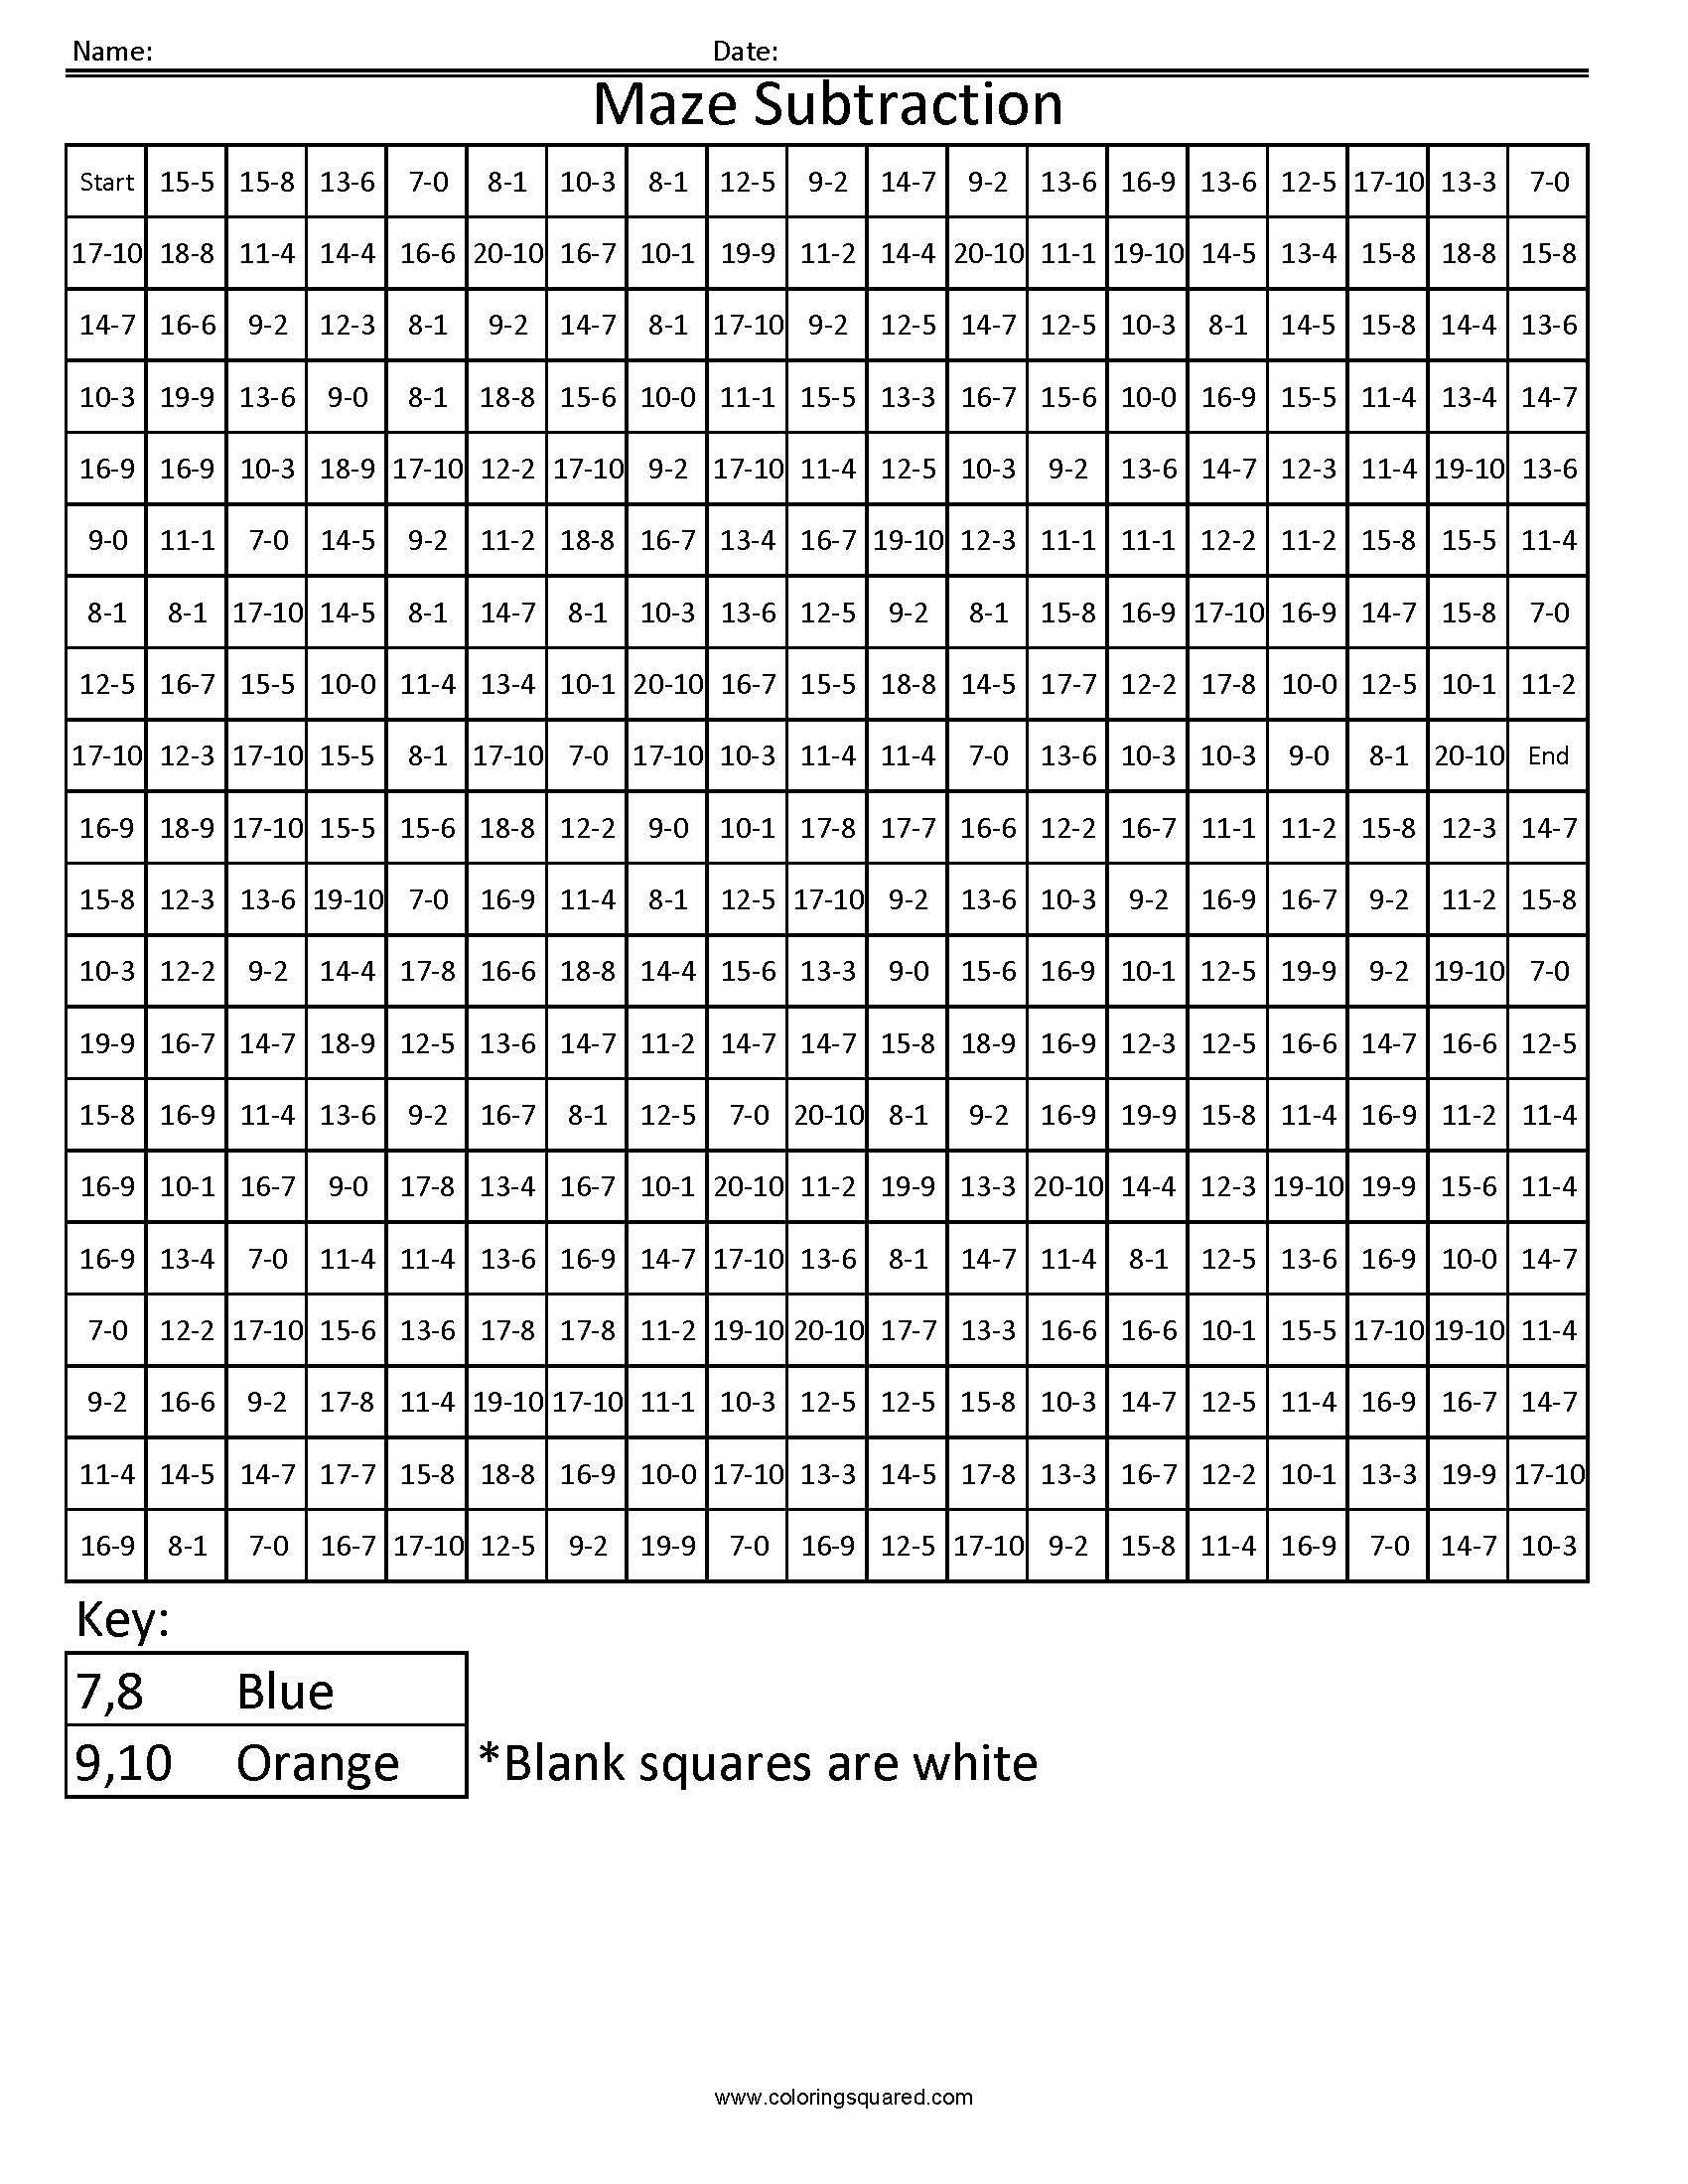 Free Periodic Table Coloring Book For Kids  Free Coloring Pages For Girls Minecraft Cutouts Printable